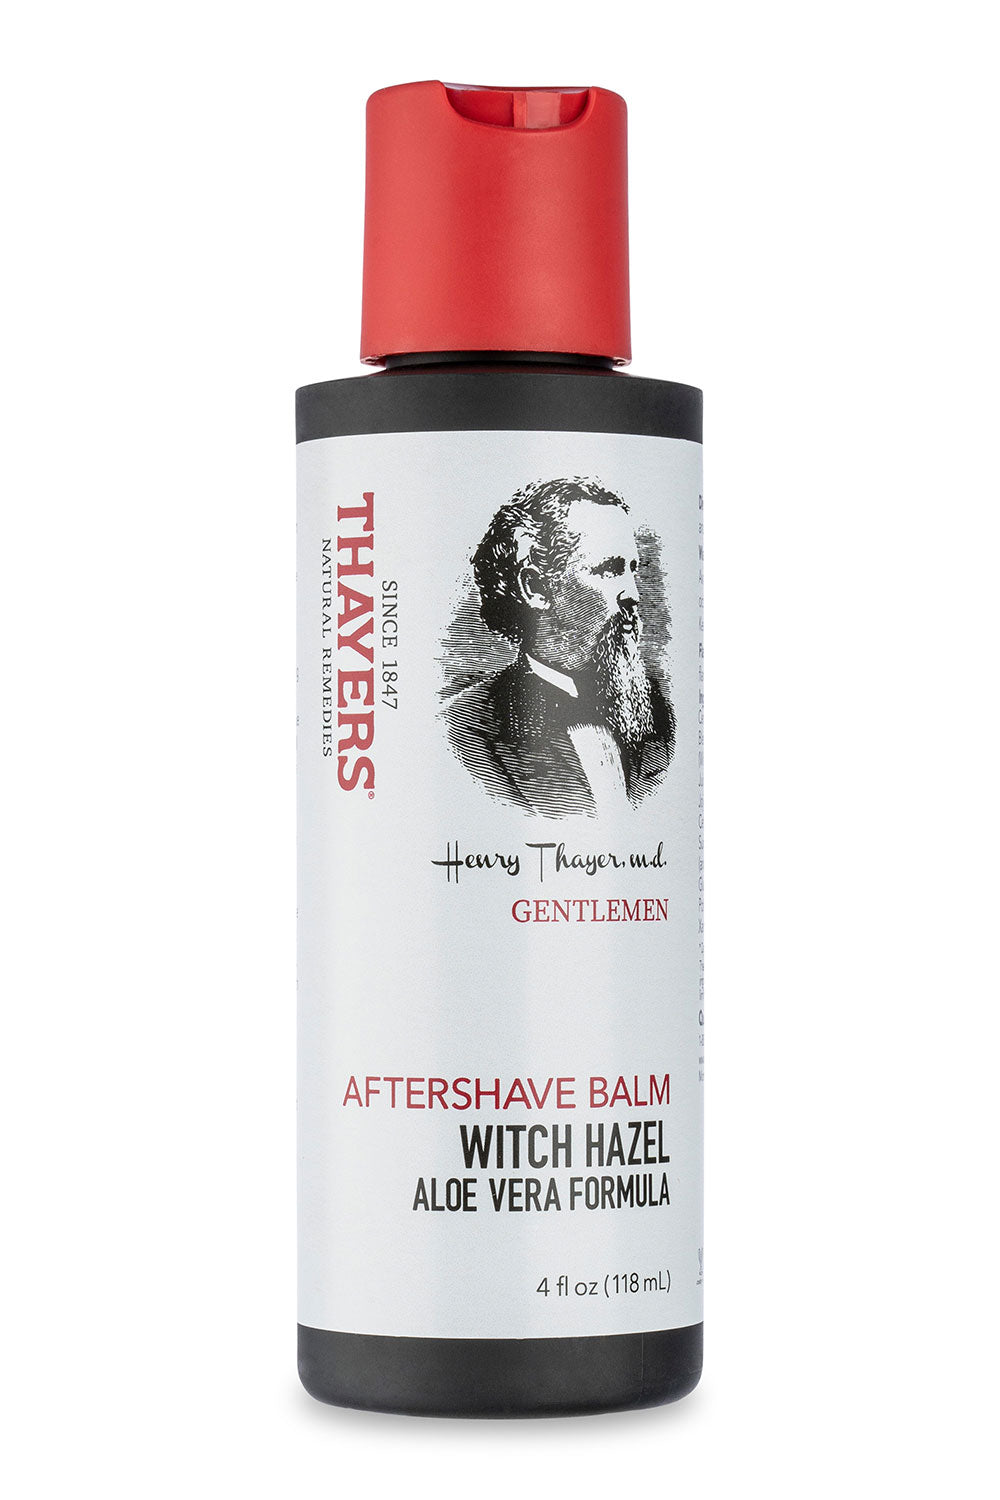 Thayers Witch Hazel- Gentlemen's Aftershave Balm